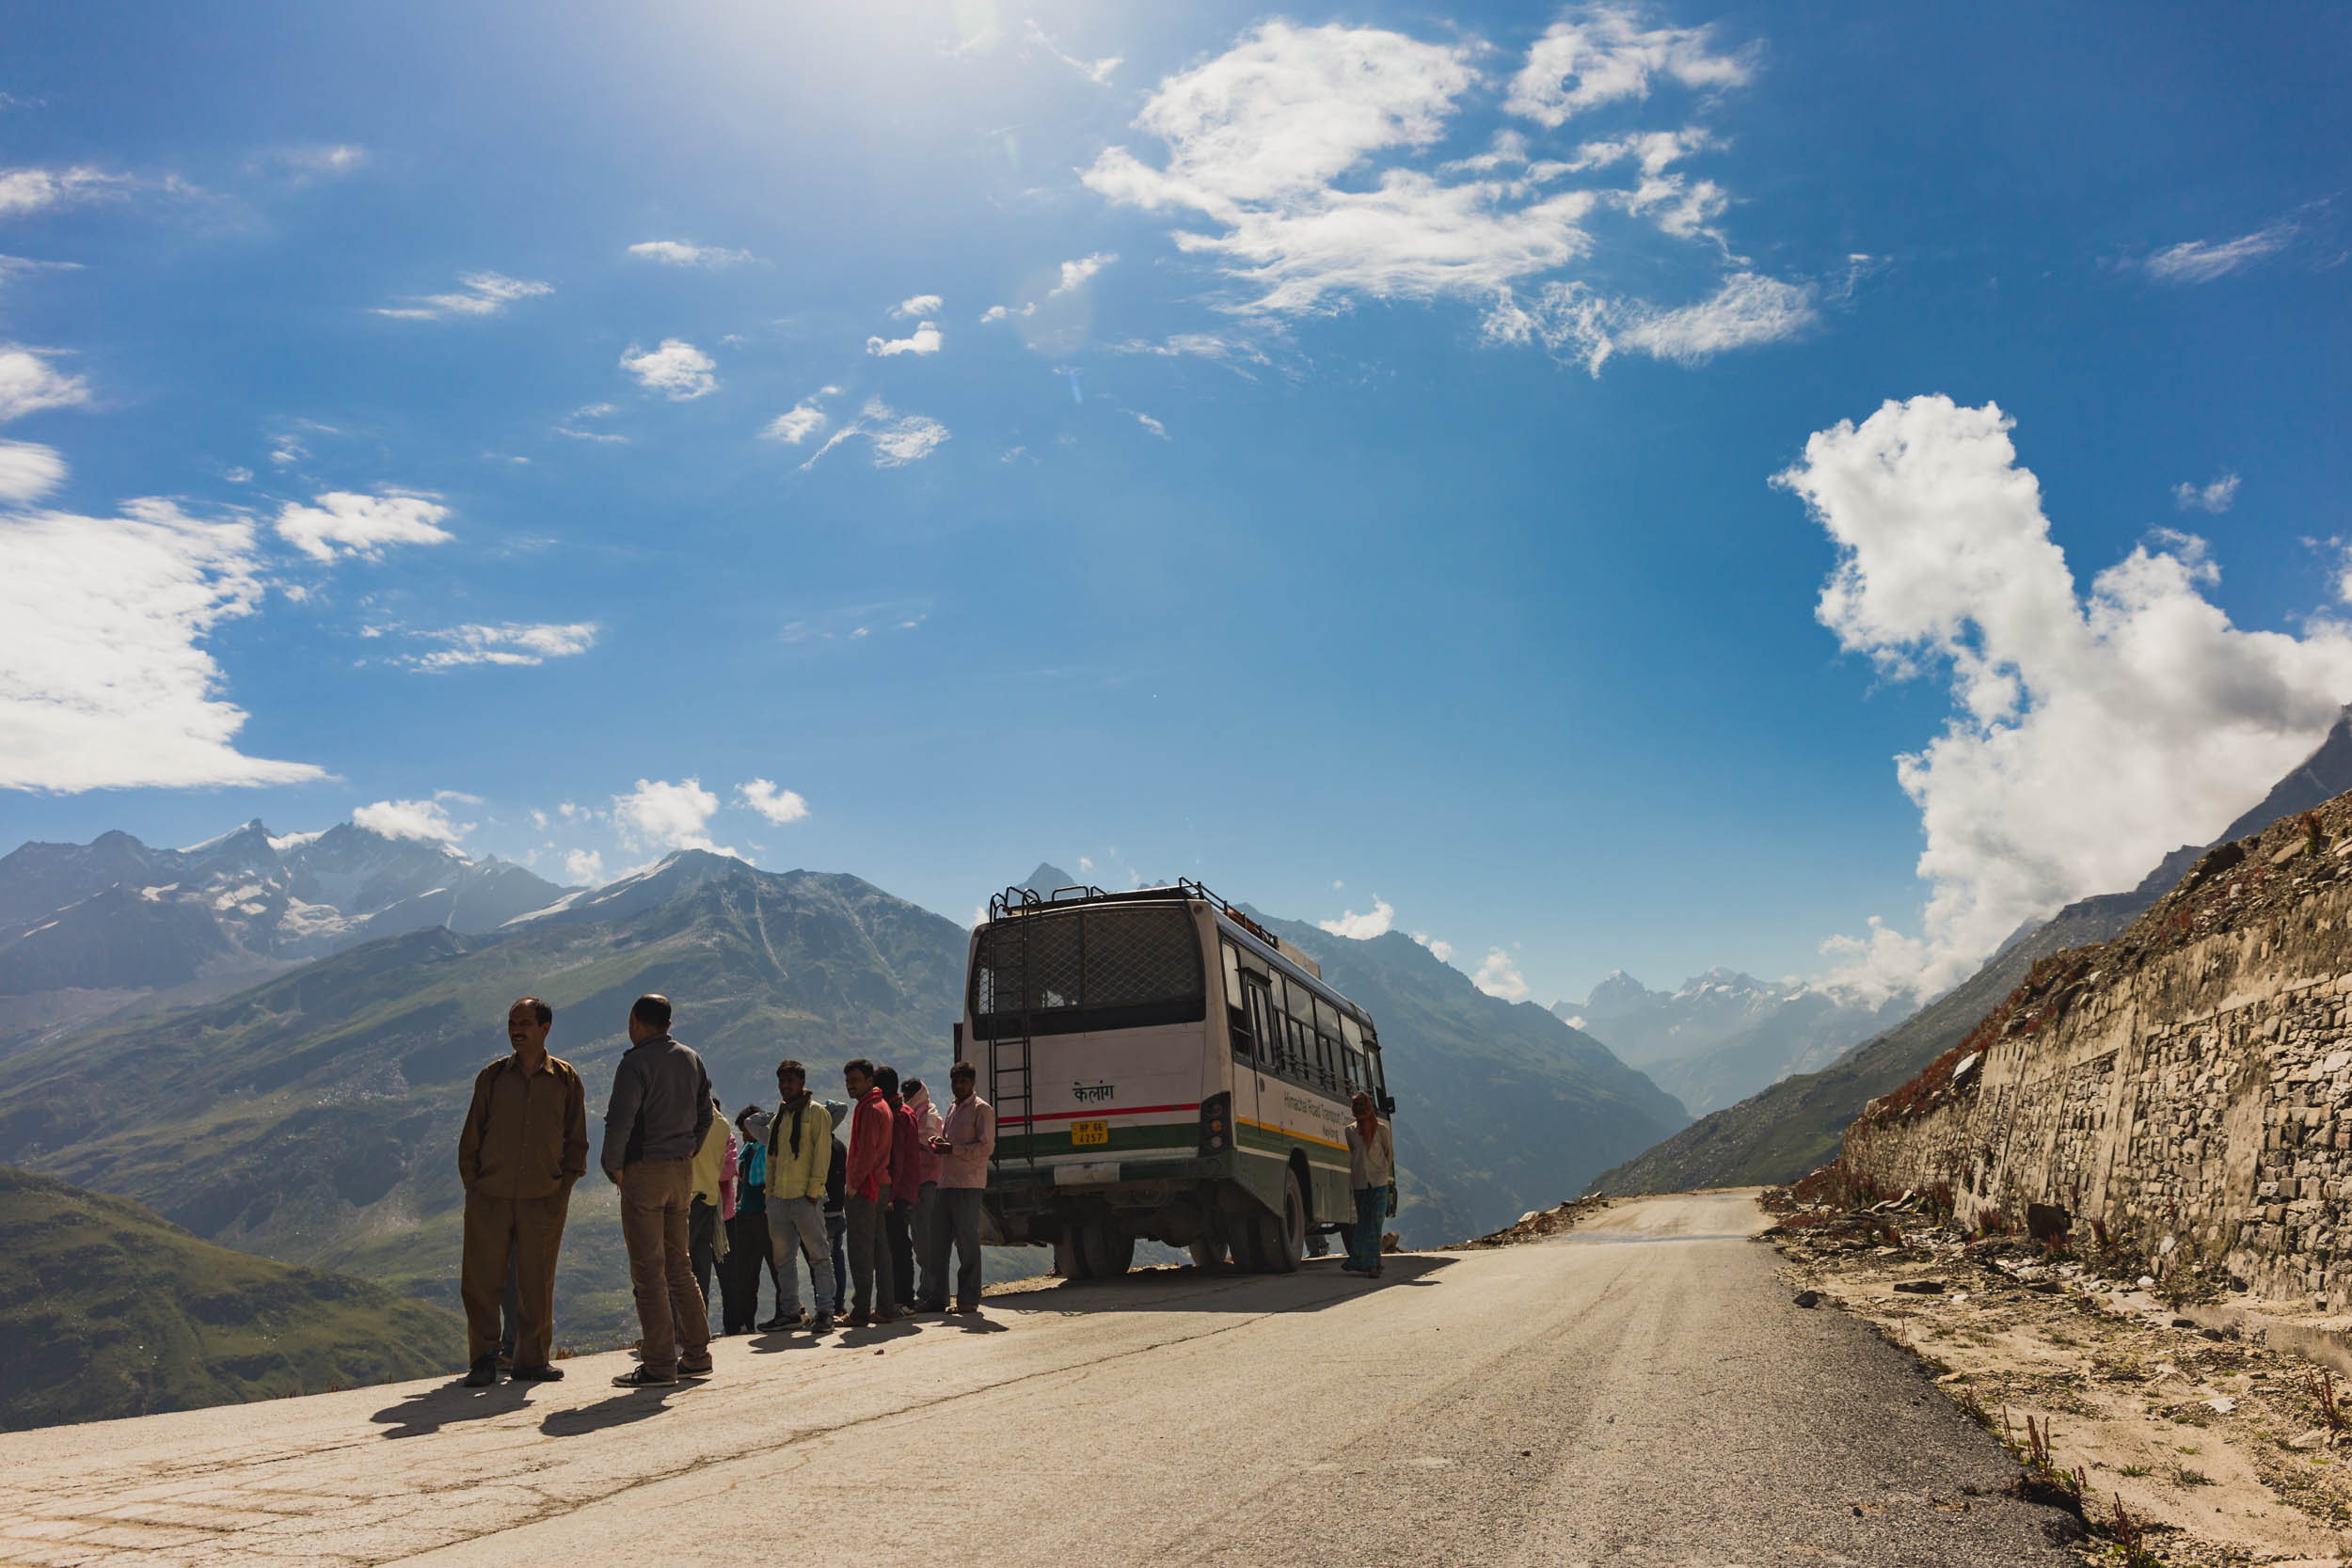 Local Bus to Spiti Valley